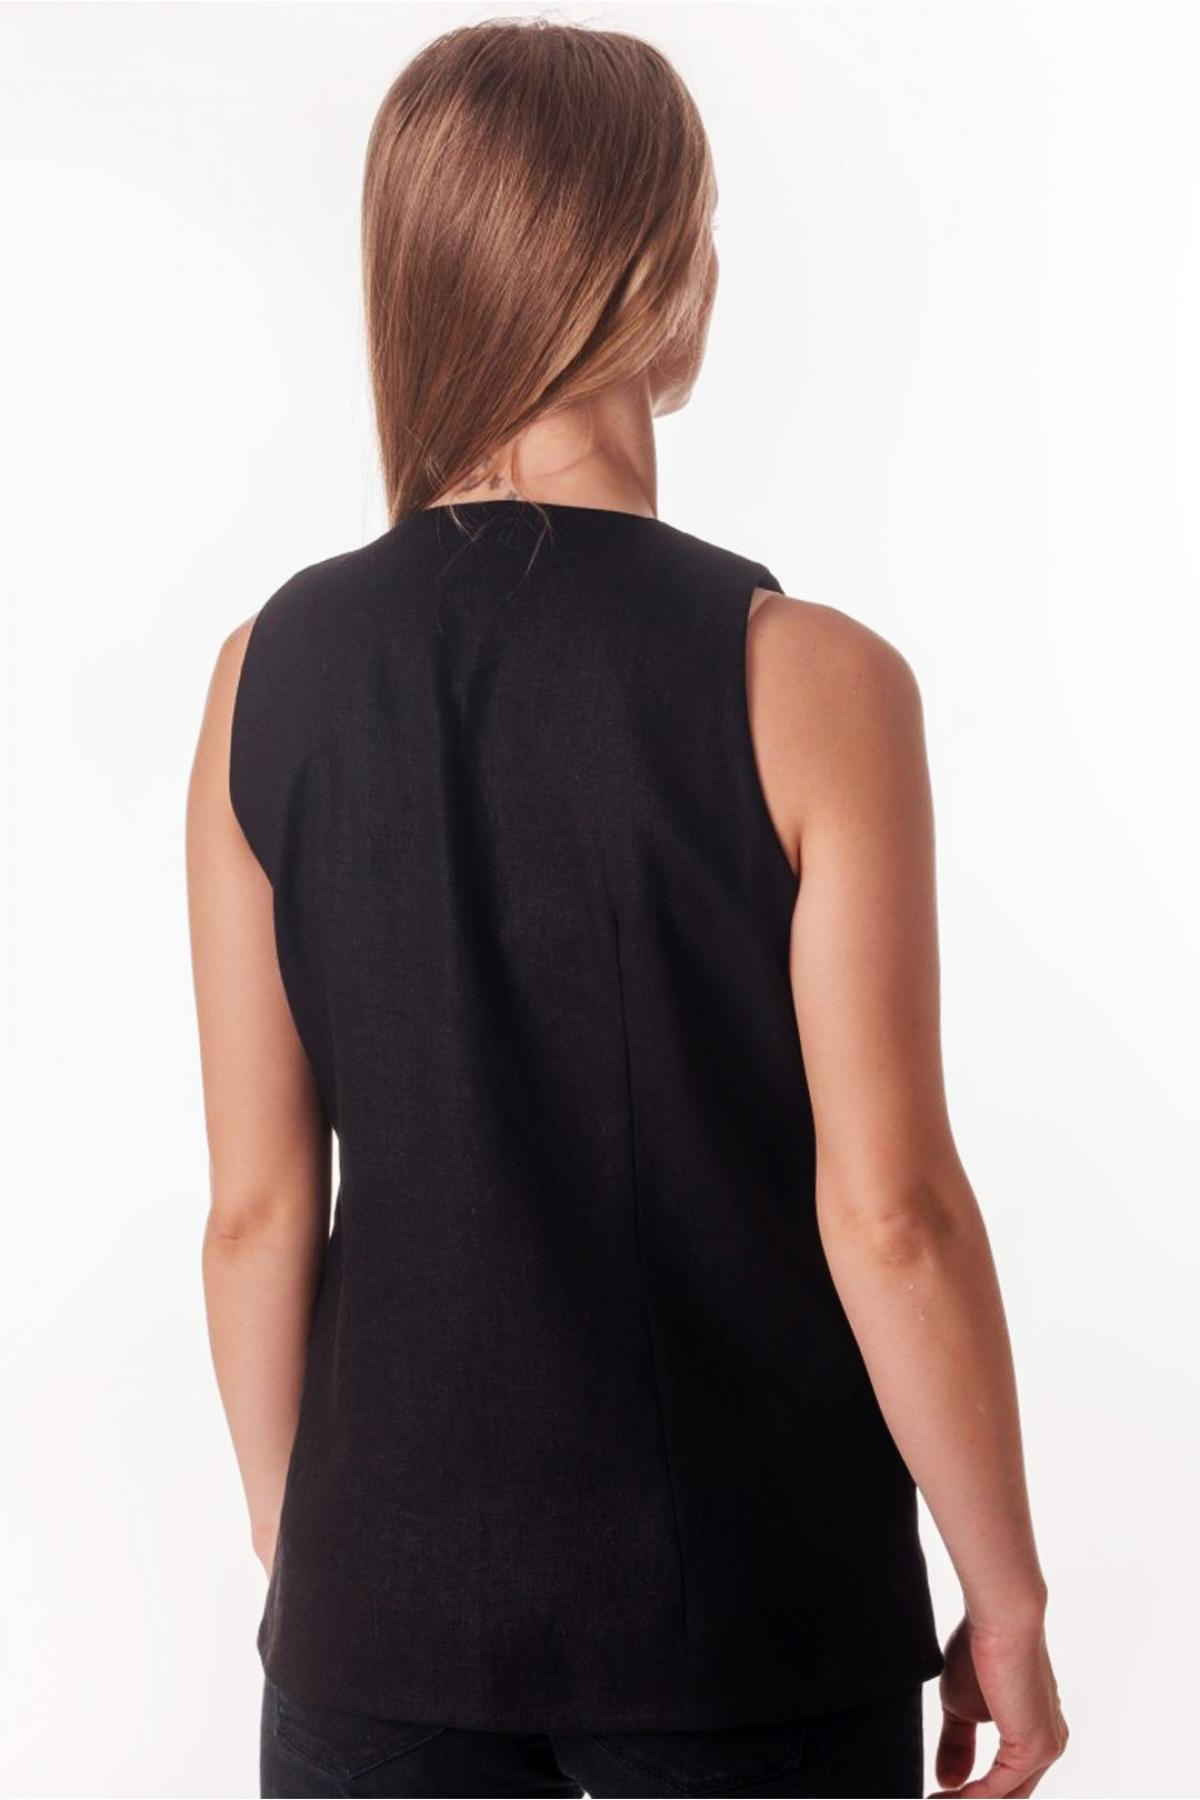 Black sleeveless embroidery. Photo №2. | Narodnyi dim Ukraine